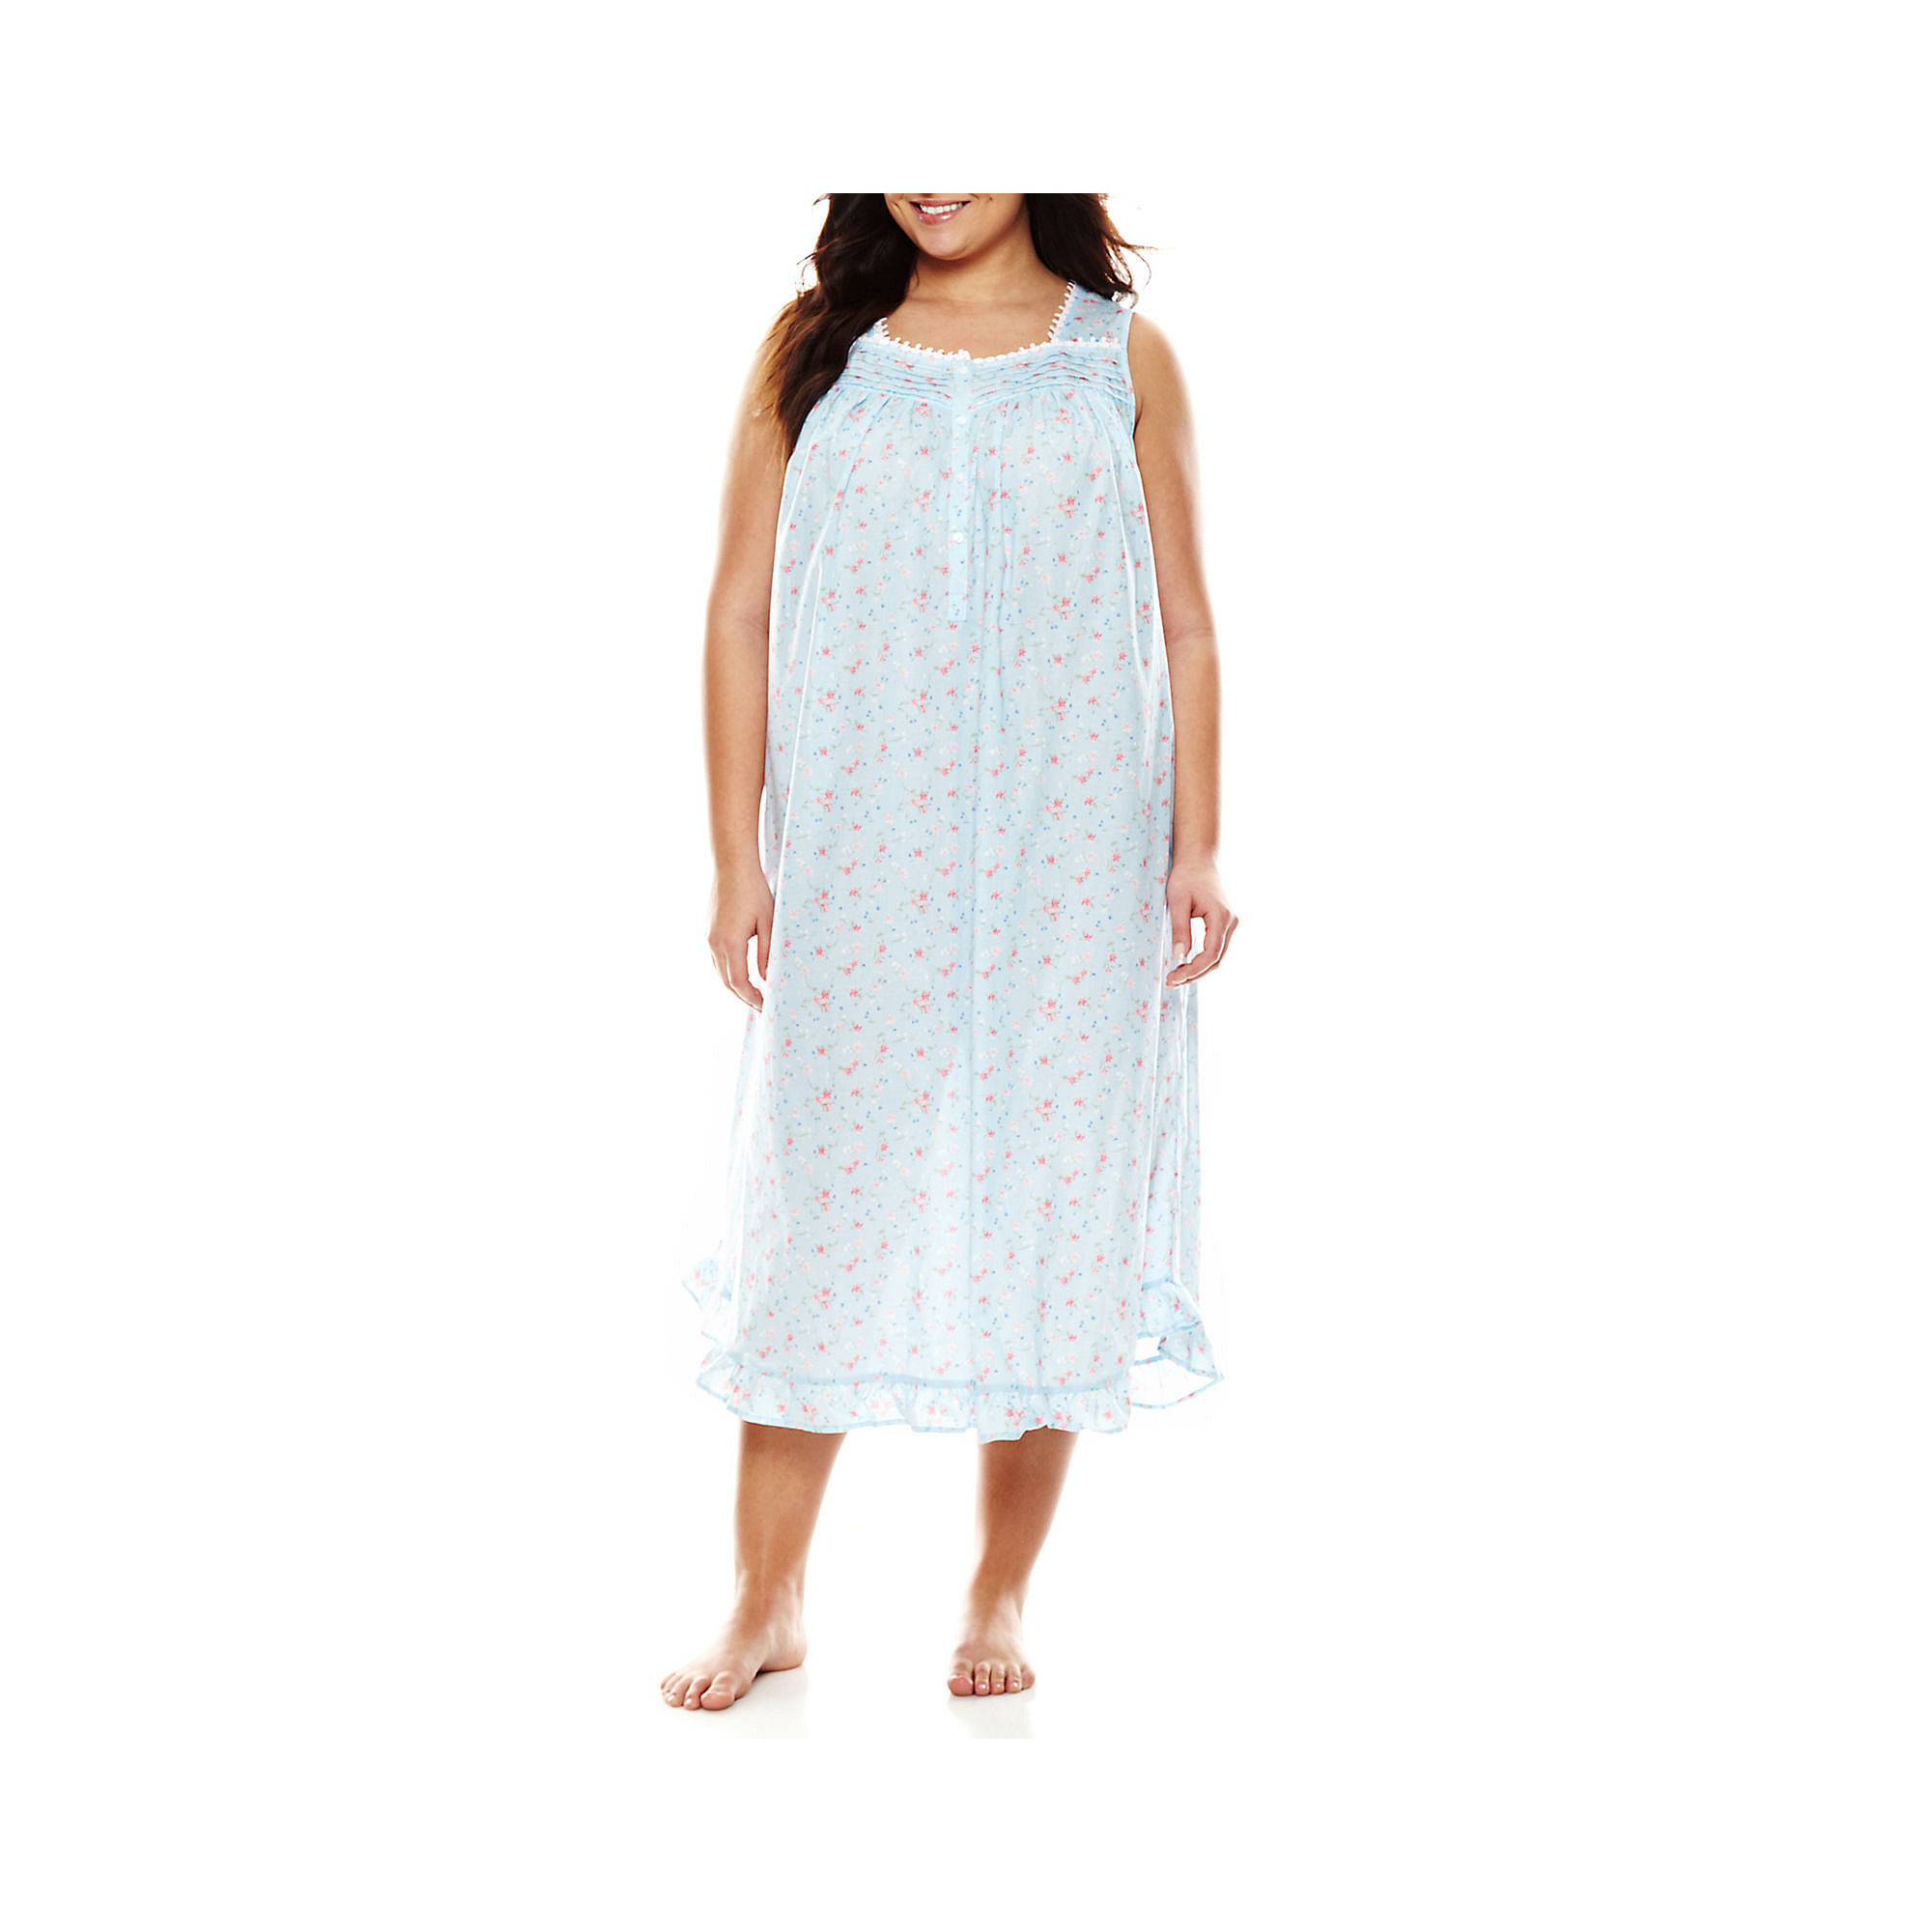 Adonna Woven Sleeveless Nightgown - Plus plus size,  plus size fashion plus size appare